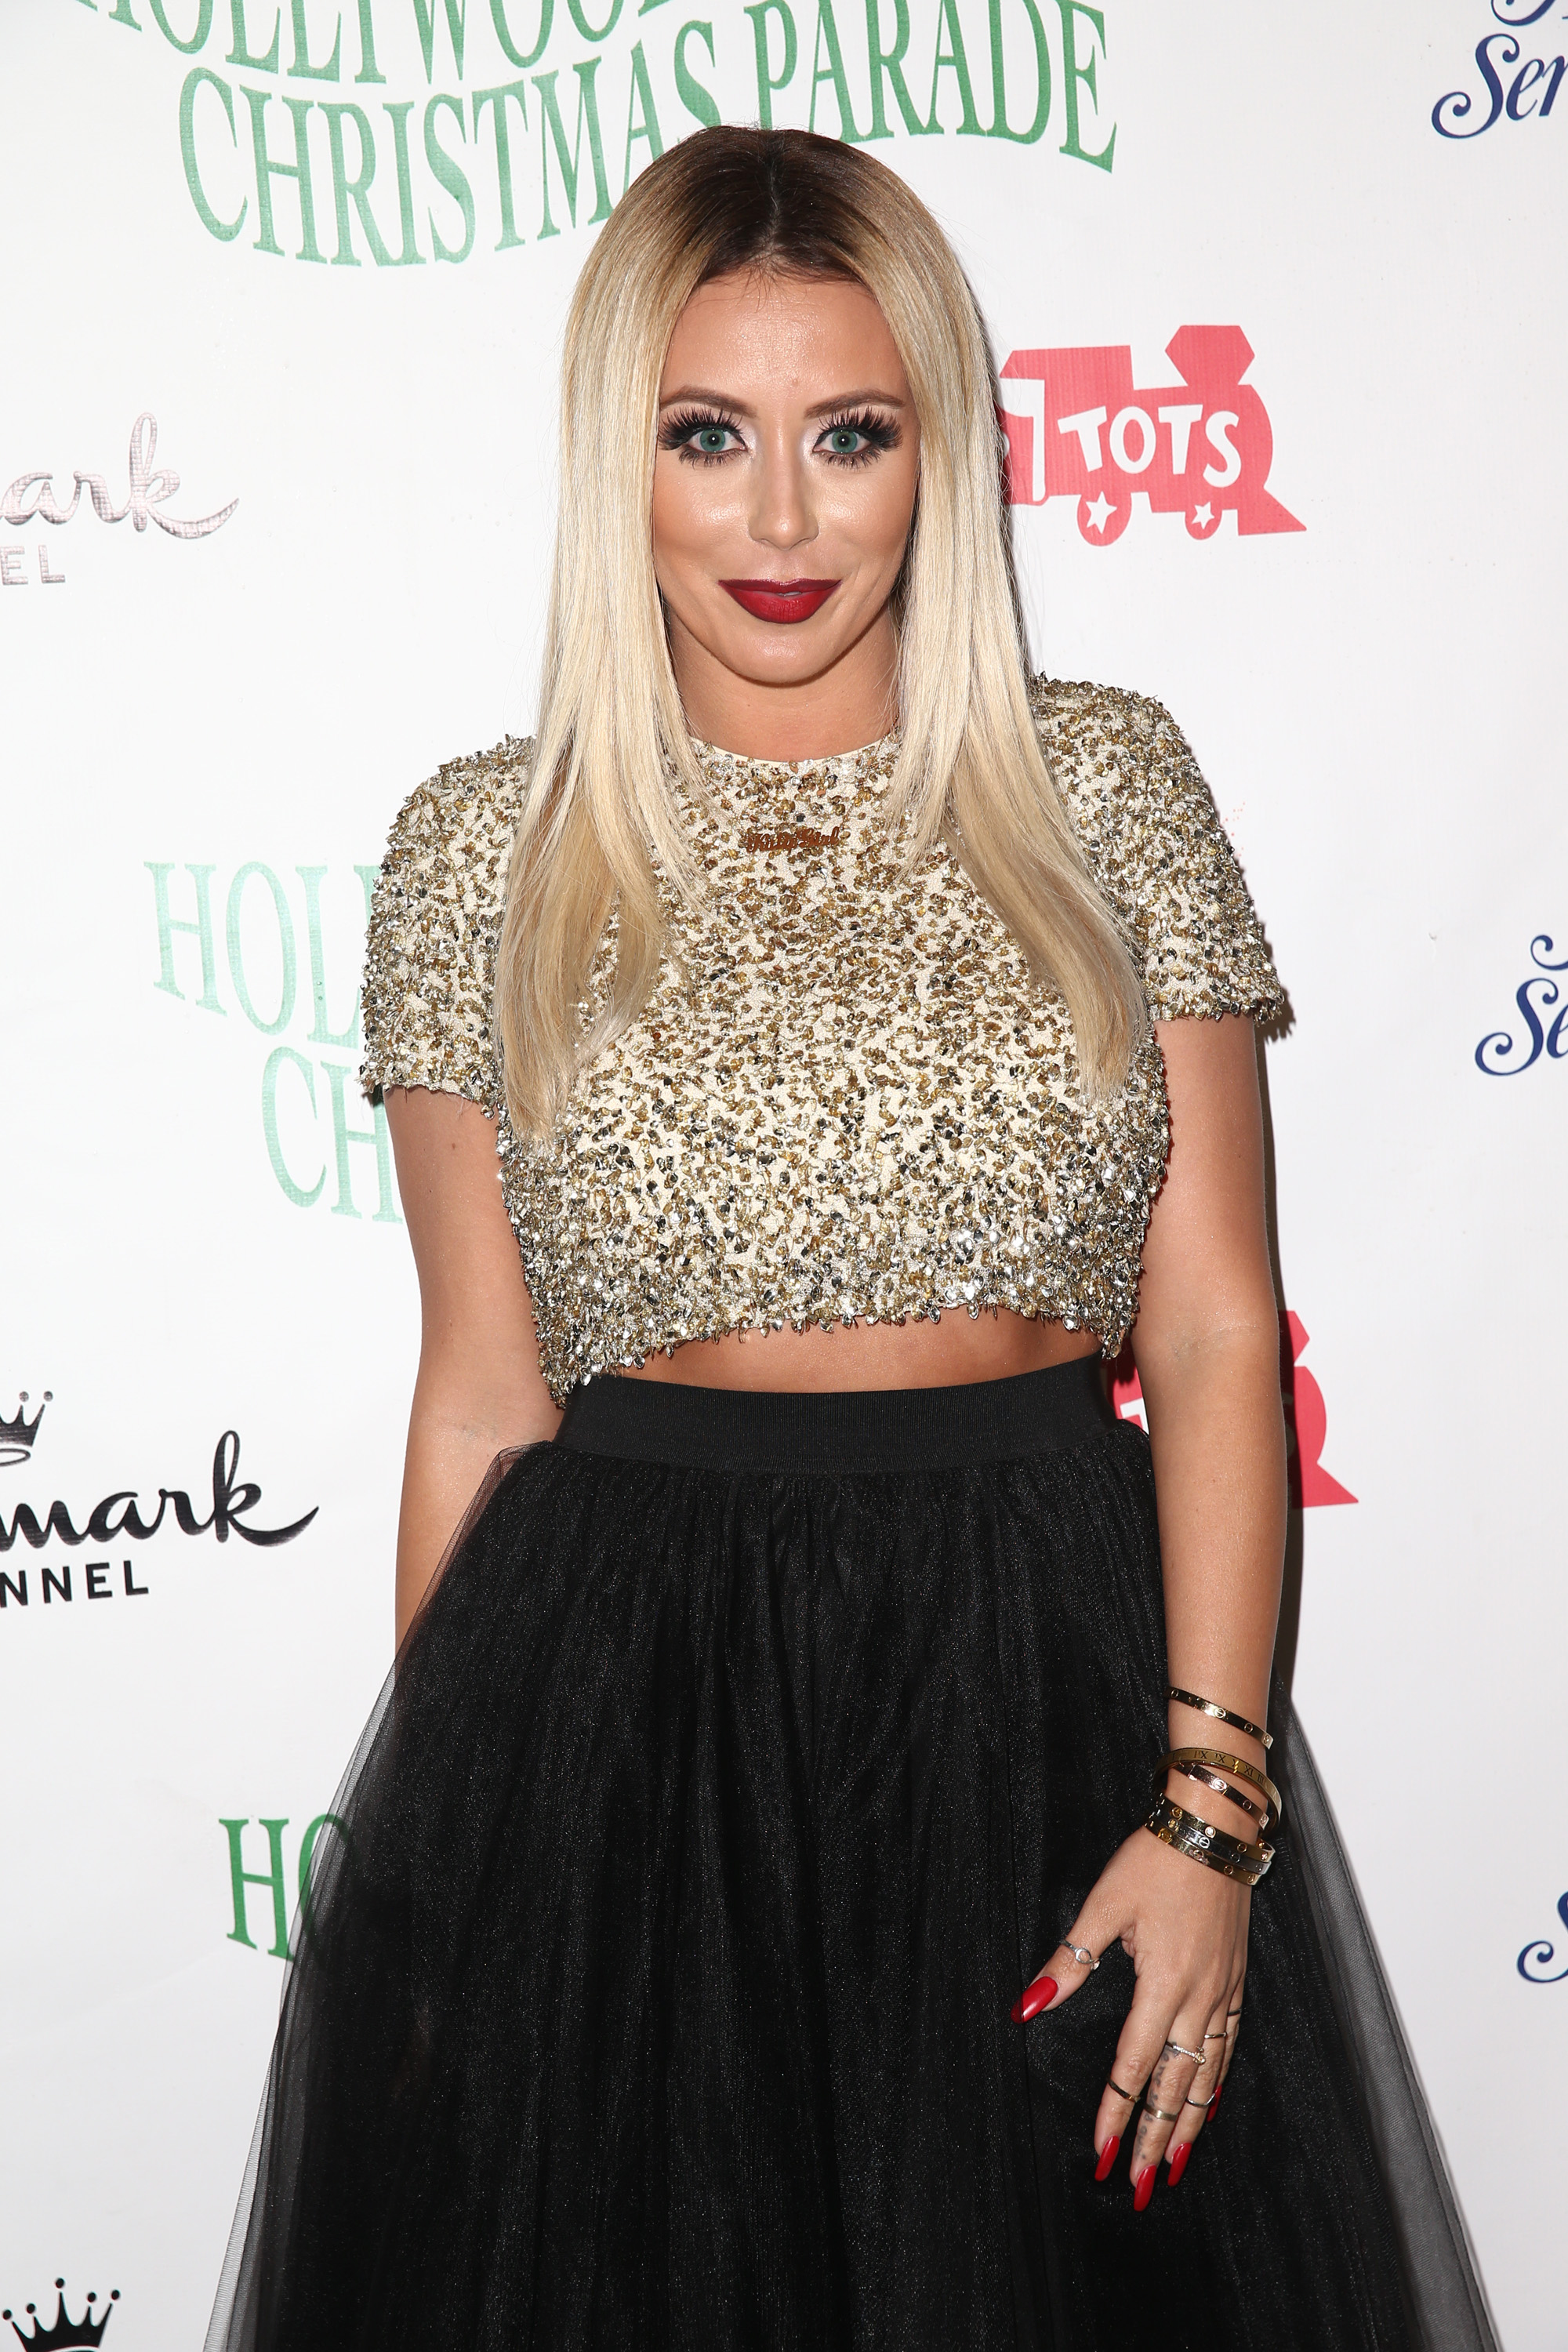 Aubrey o'day dating travis garland